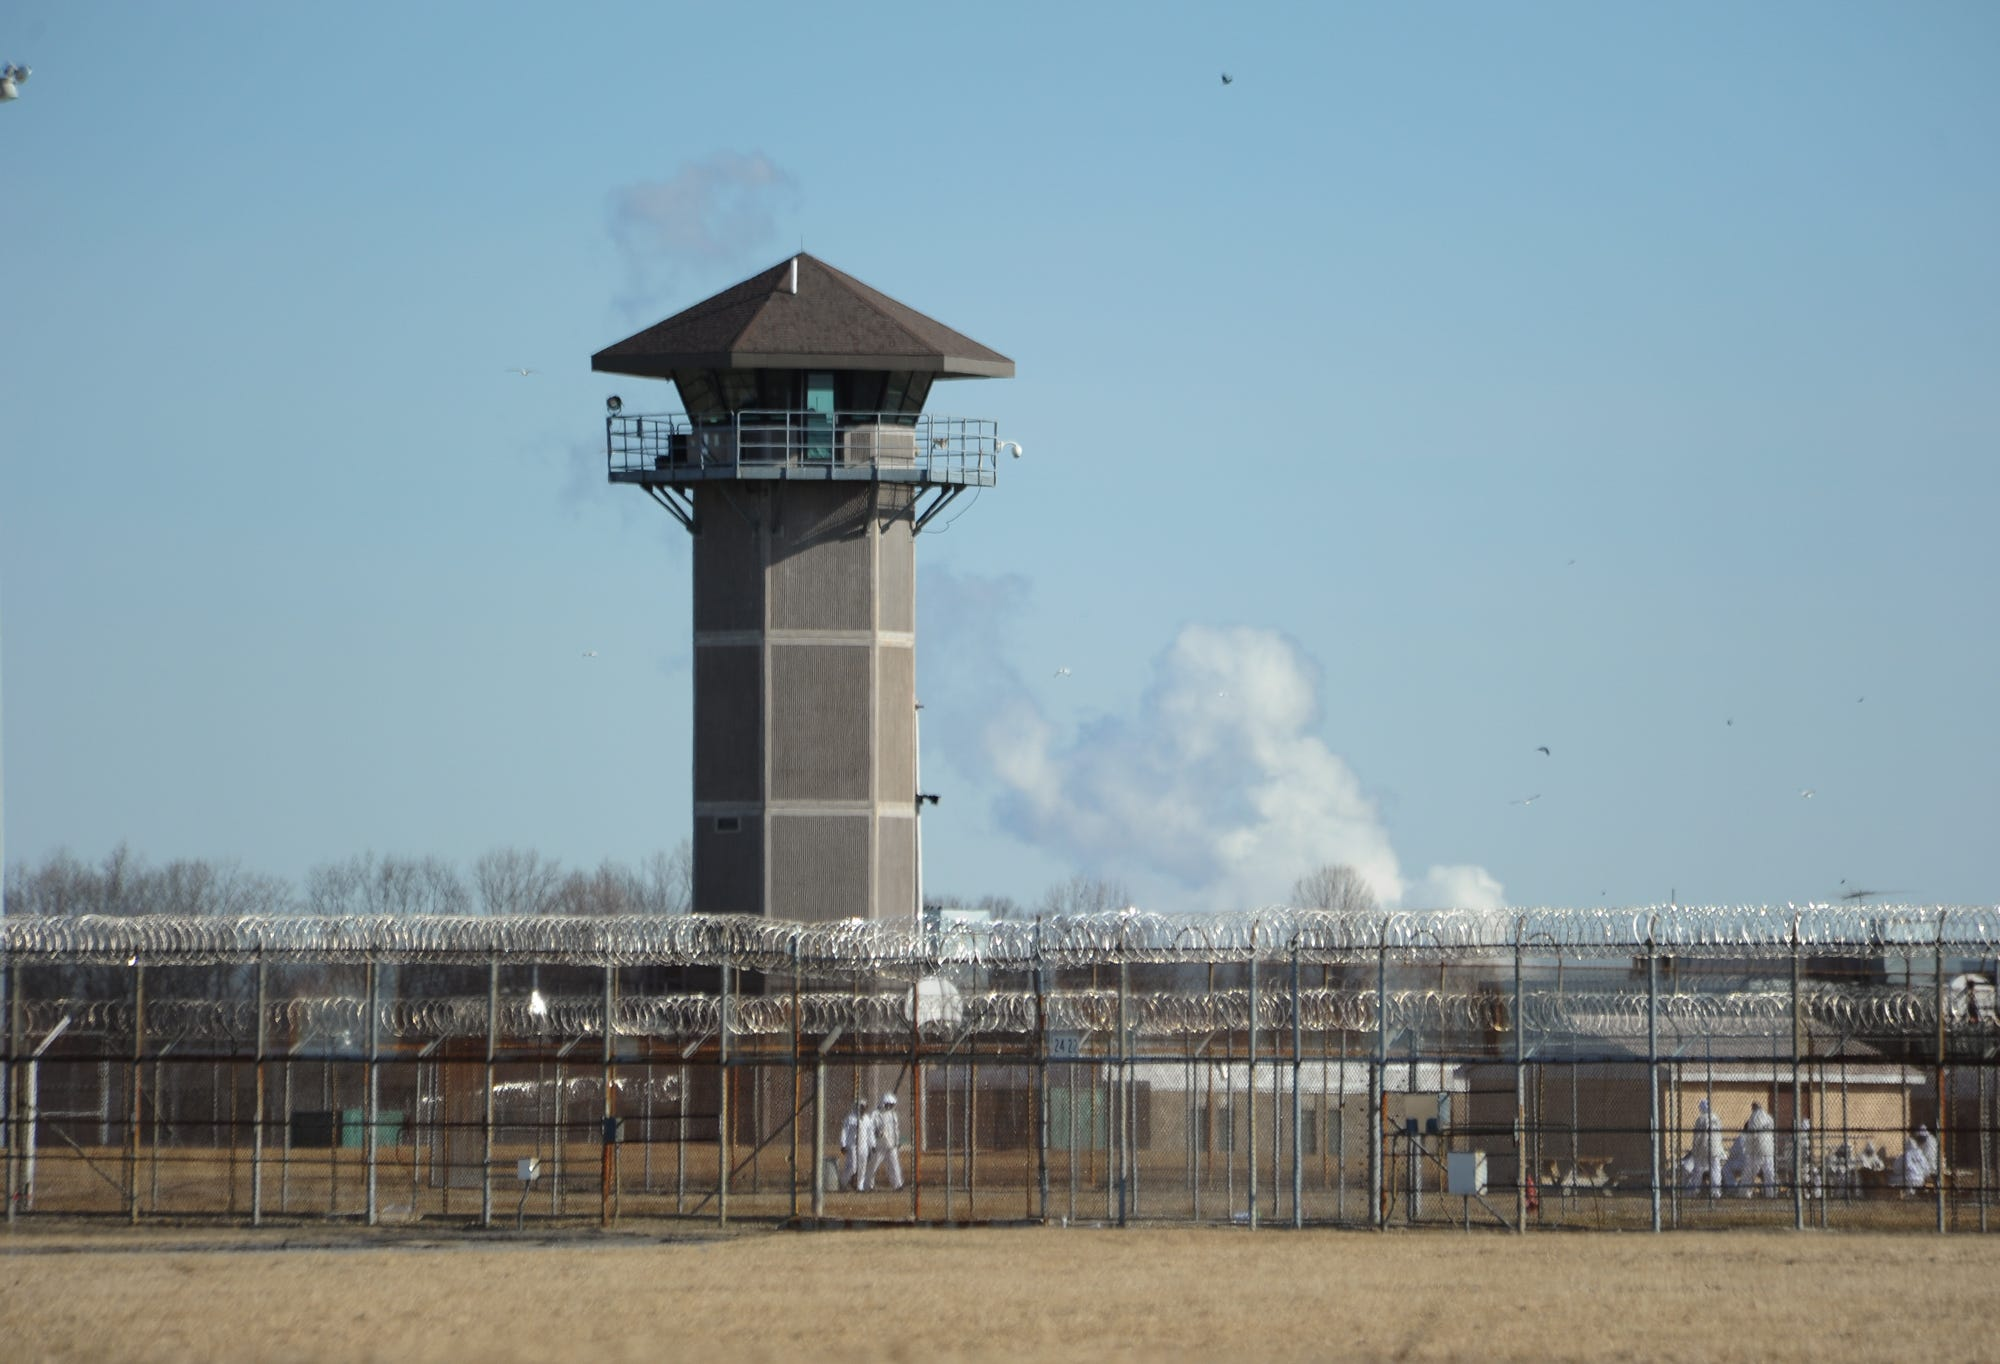 Report shows signs of progress, openness in Delaware prisons